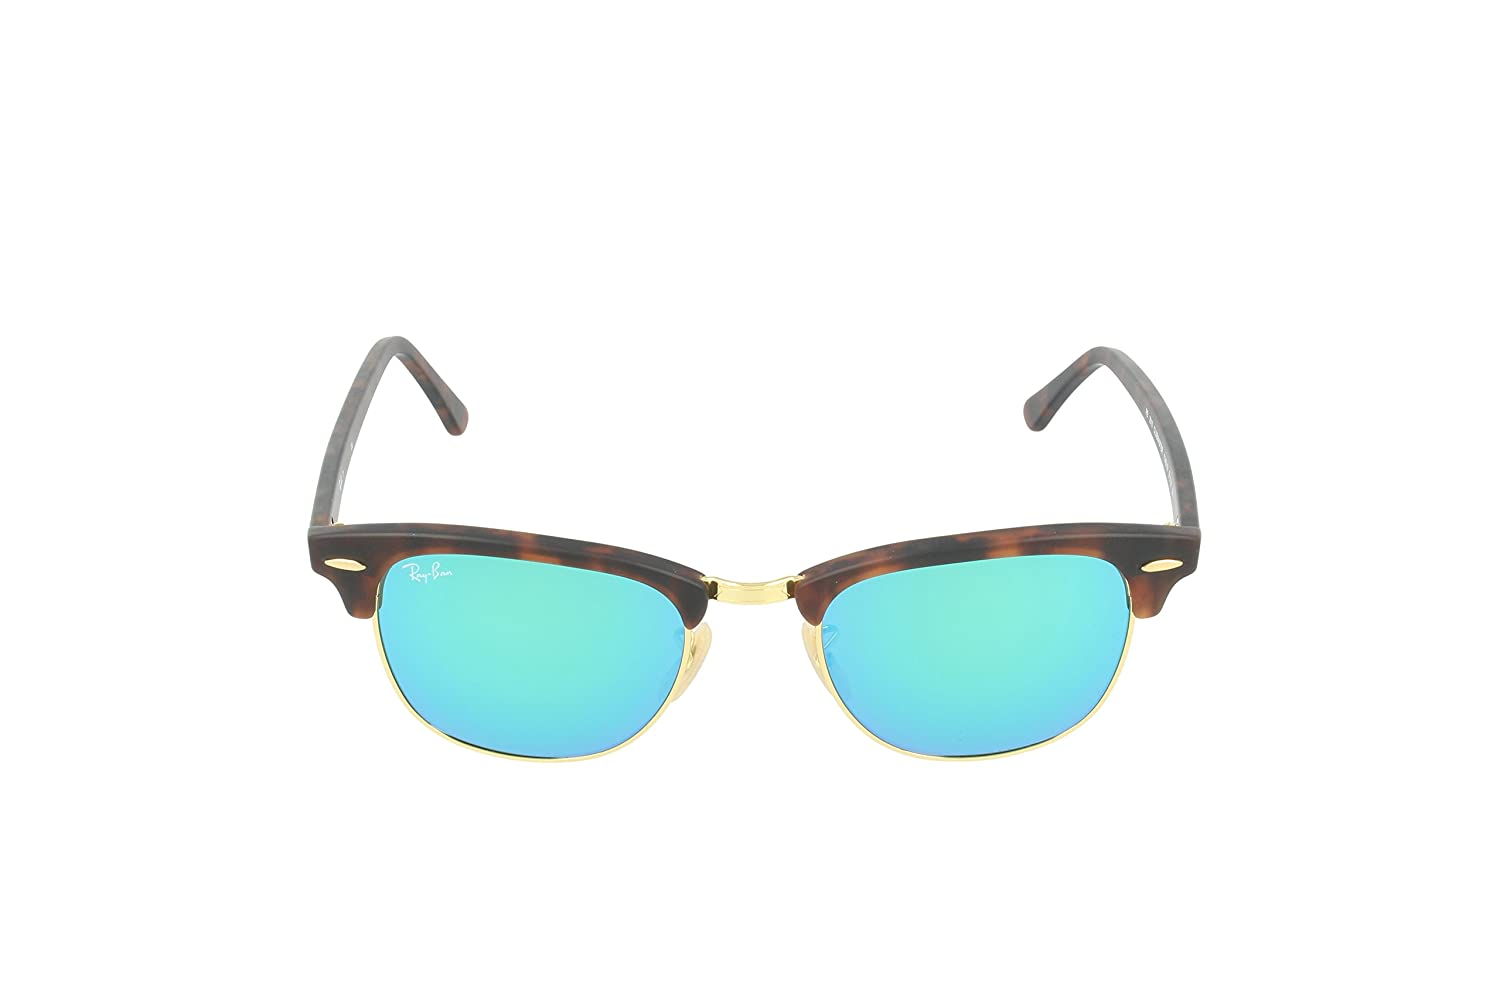 ray ban clubmaster square polarized  Amazon.com: Ray-Ban CLUBMASTER - SAND HAVANA/GOLD Frame GREY ...